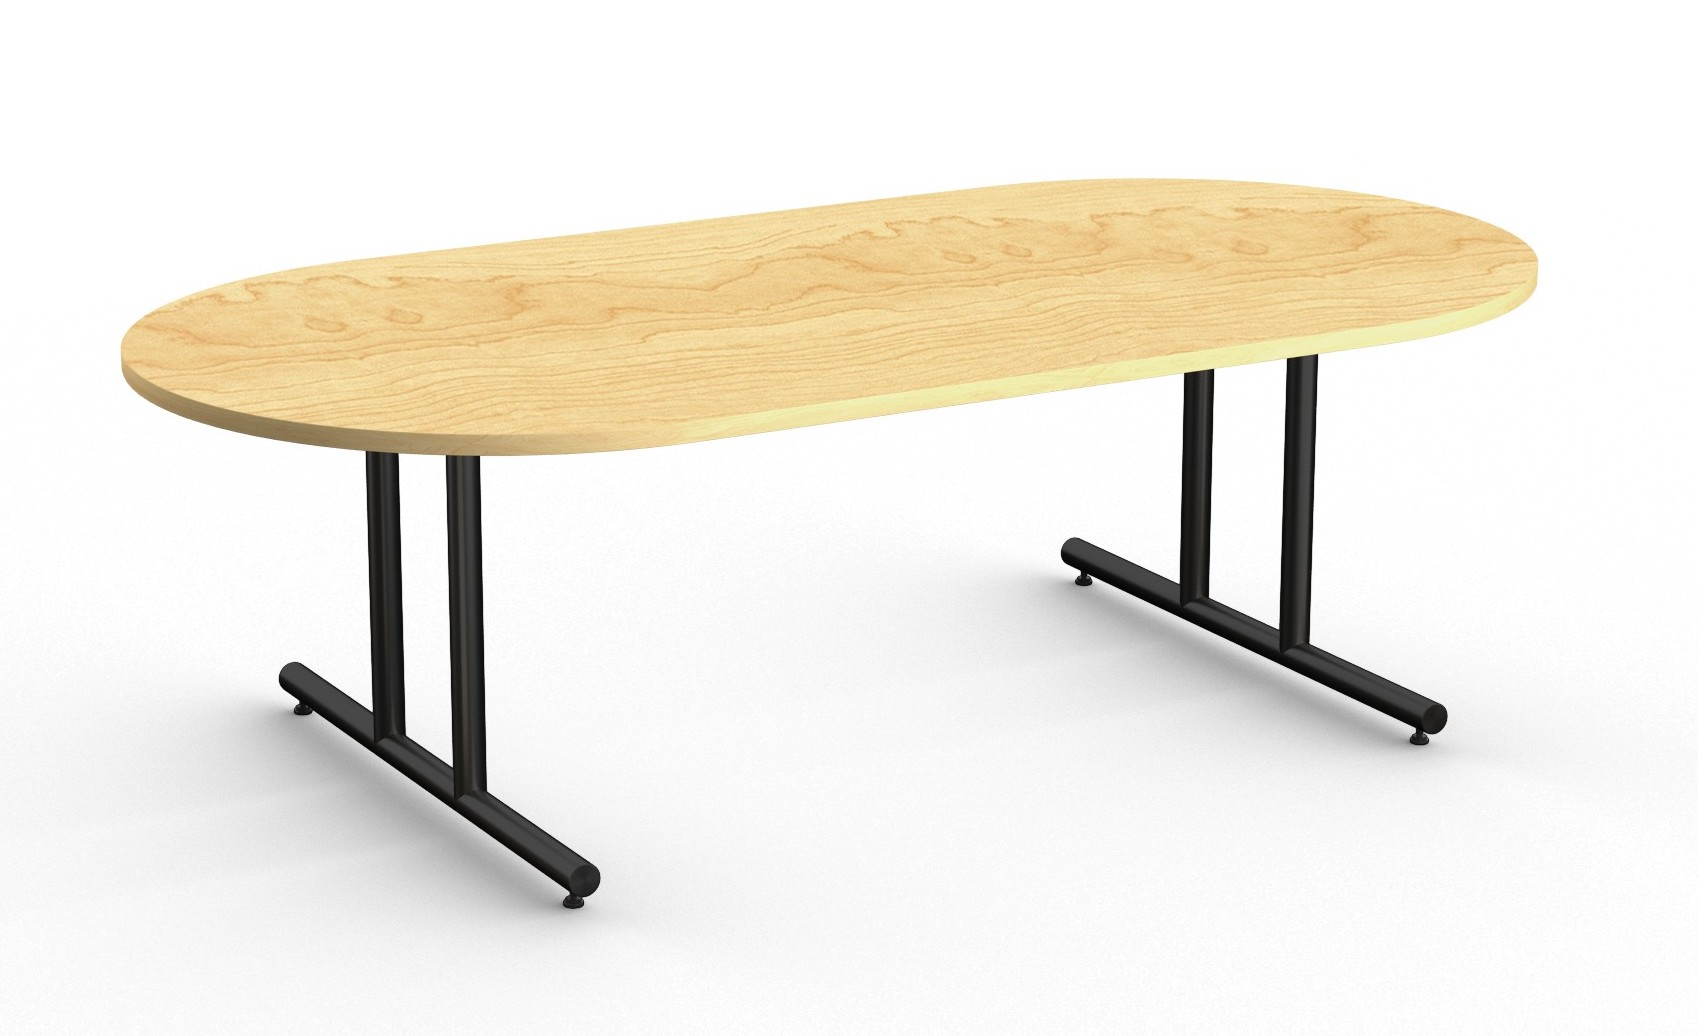 special-t olympus racetrack conference table